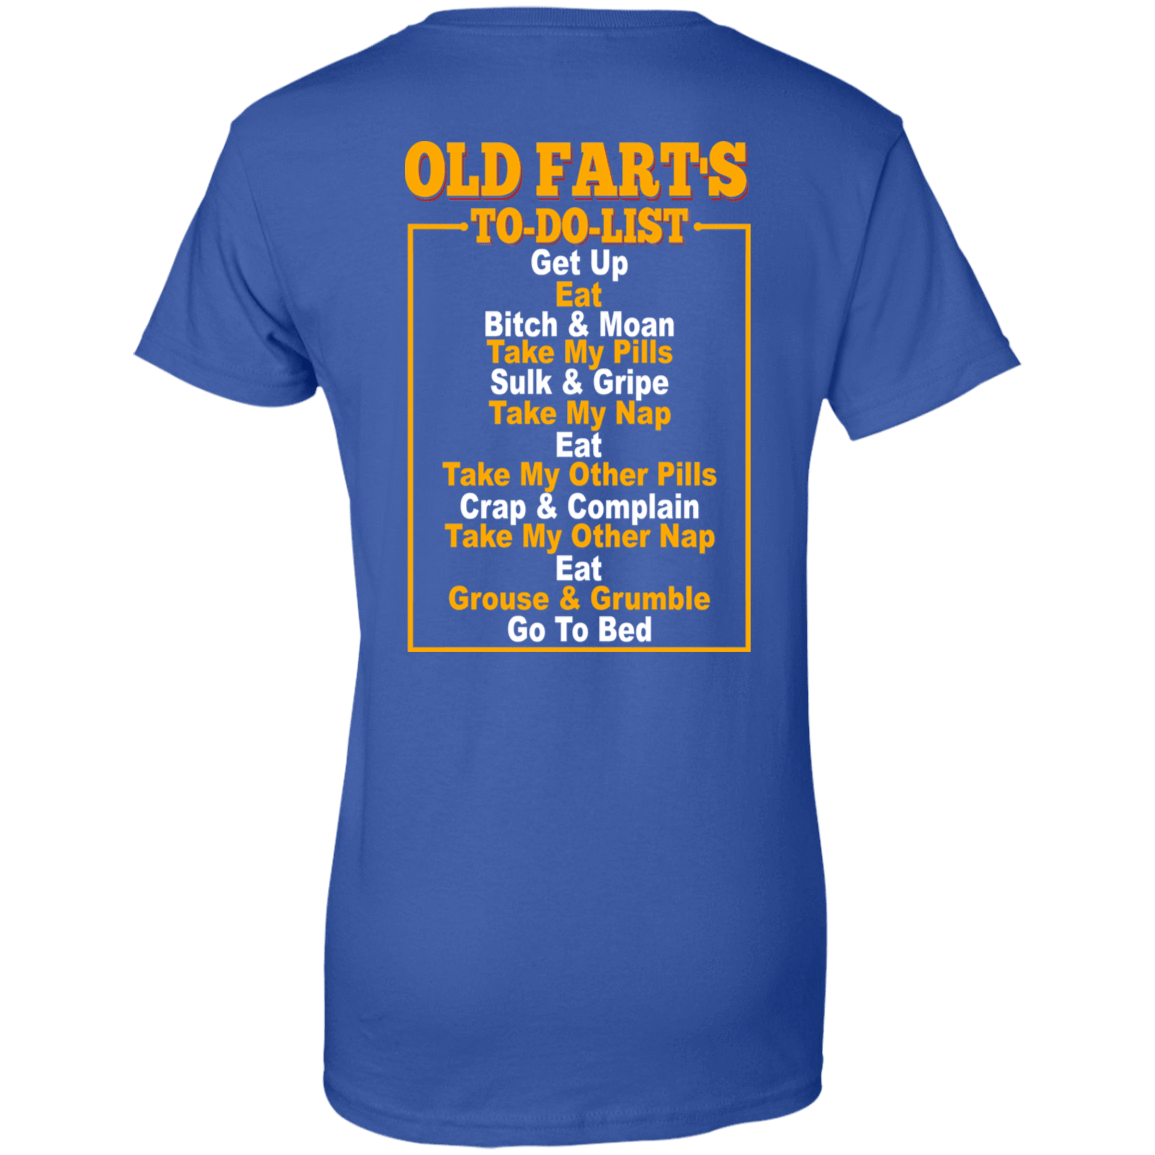 Old Fart's To Do List 939-9264-73421049-44807 - Tee Ript